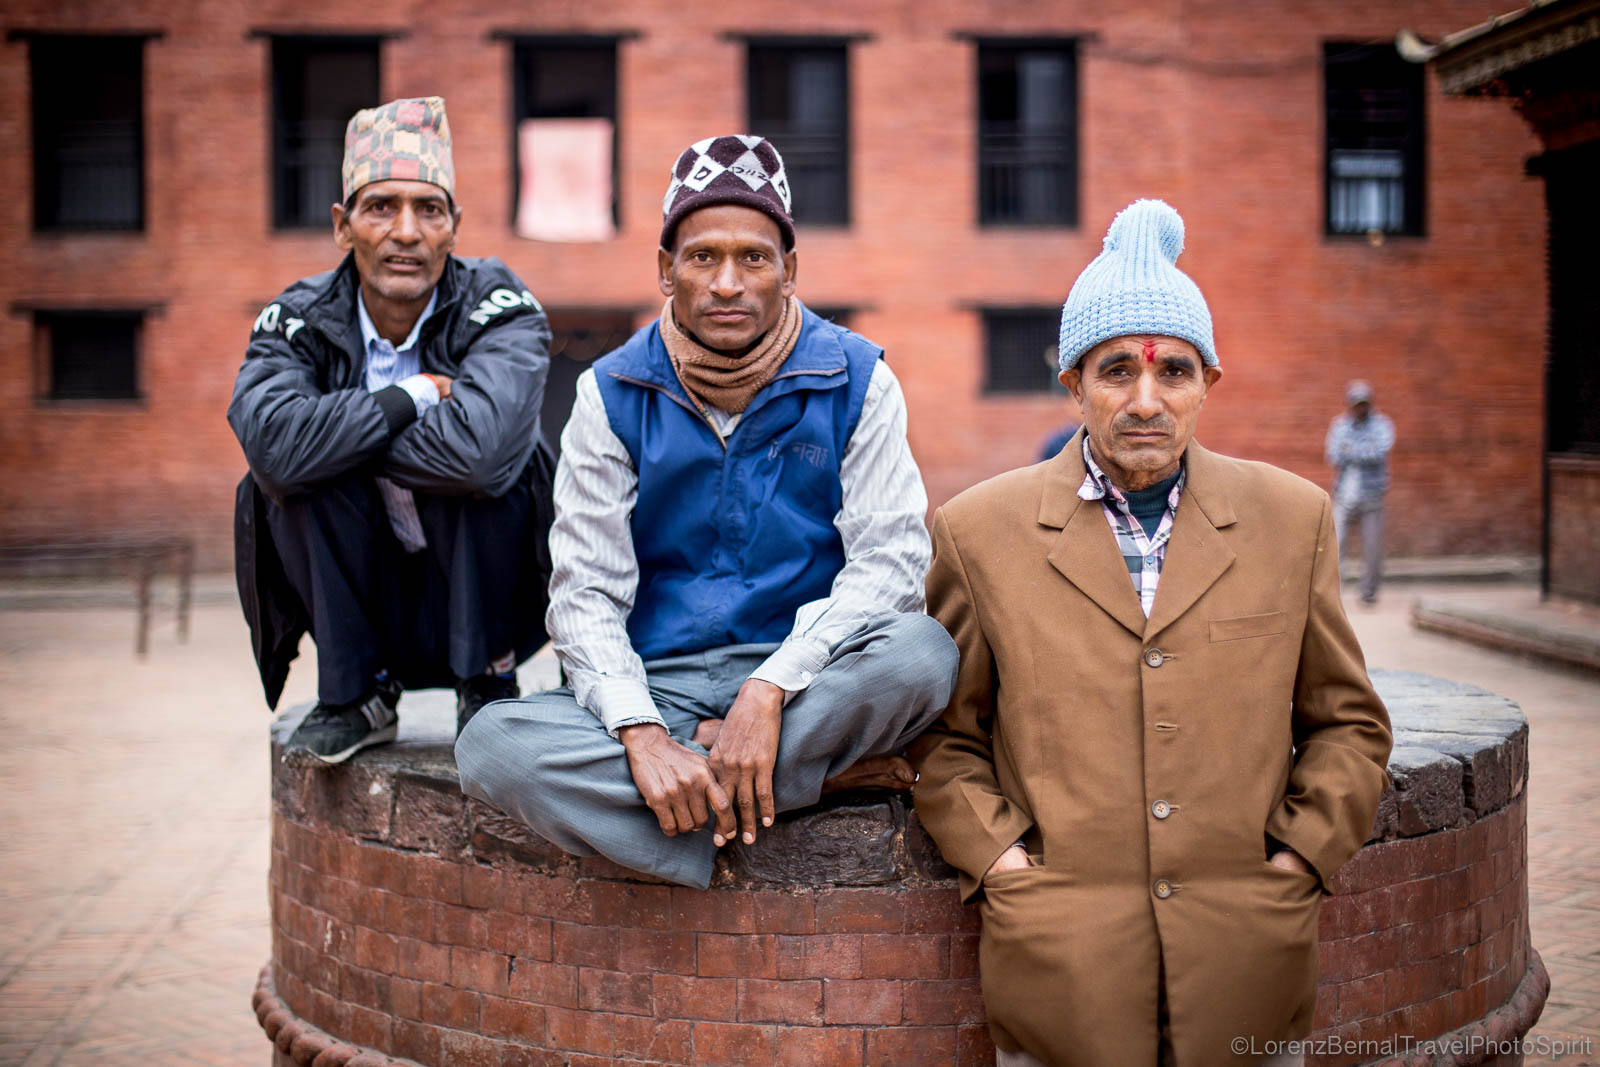 Travel portraits of Nepali men in Kathmandu Durbar square - Nepal Travel Photography by Lorenz Bera